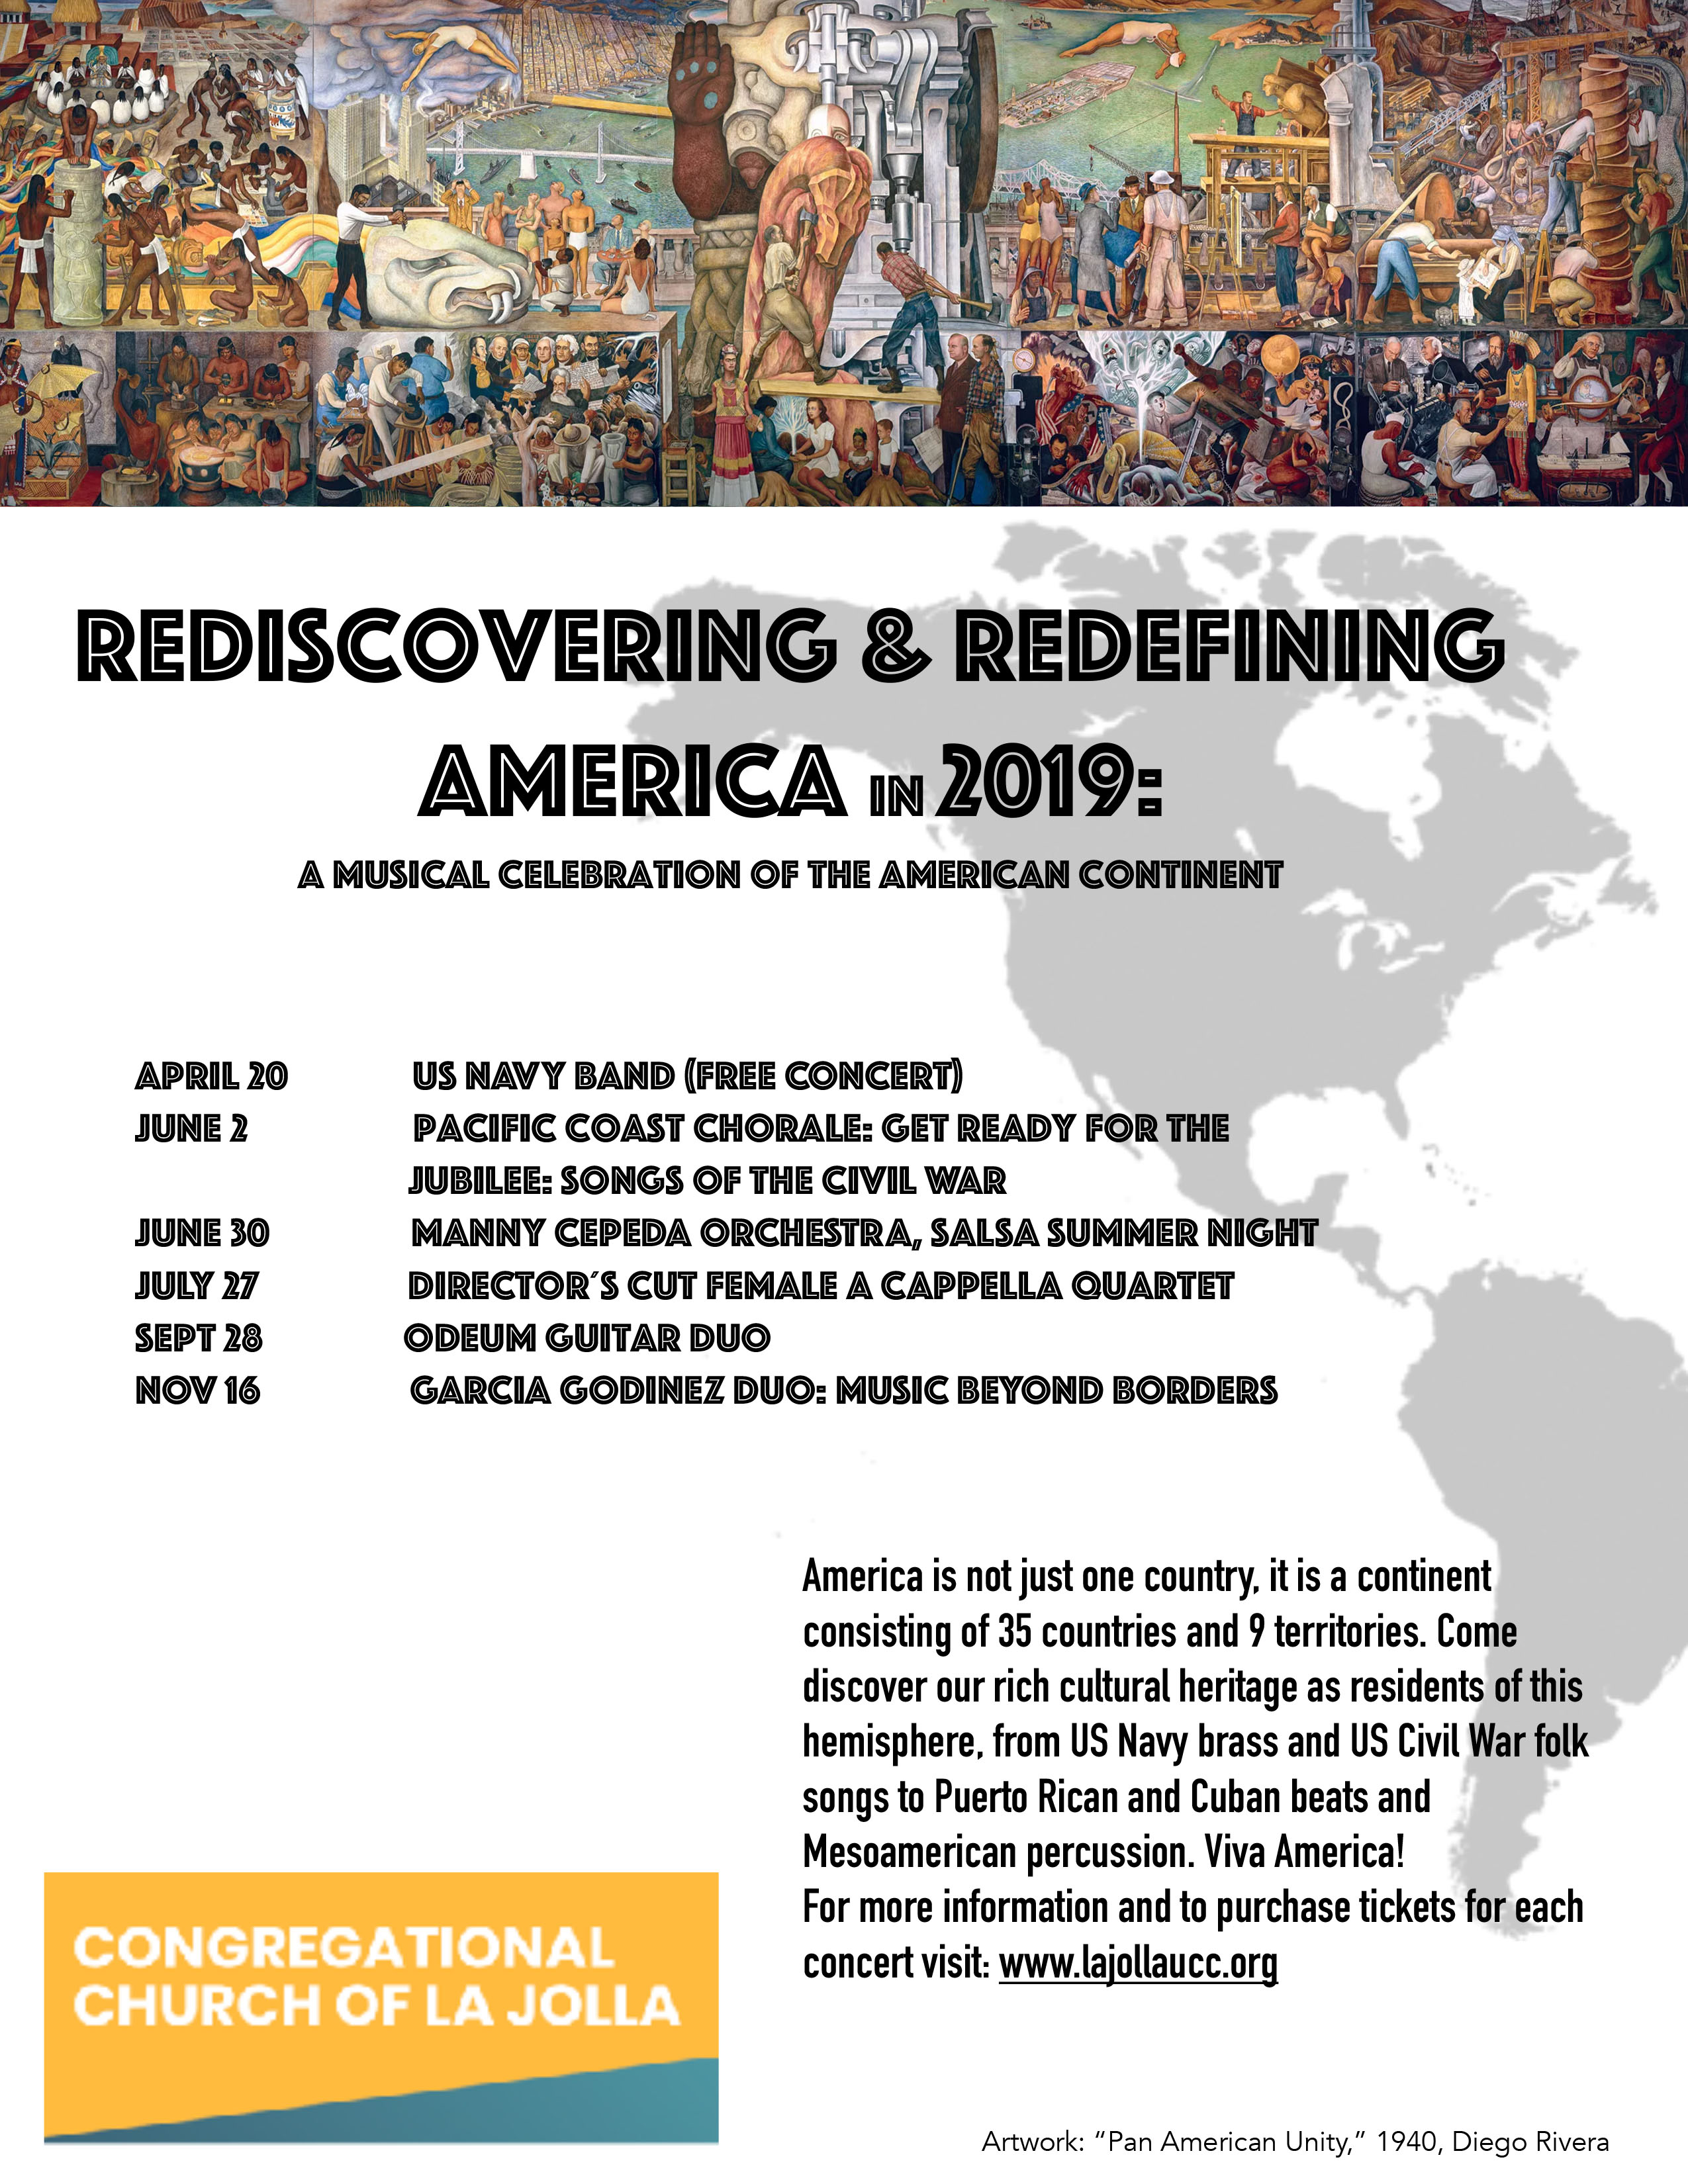 Rediscovering Photography On Summer >> Rediscovering Redefining America In 2019 Concert Series